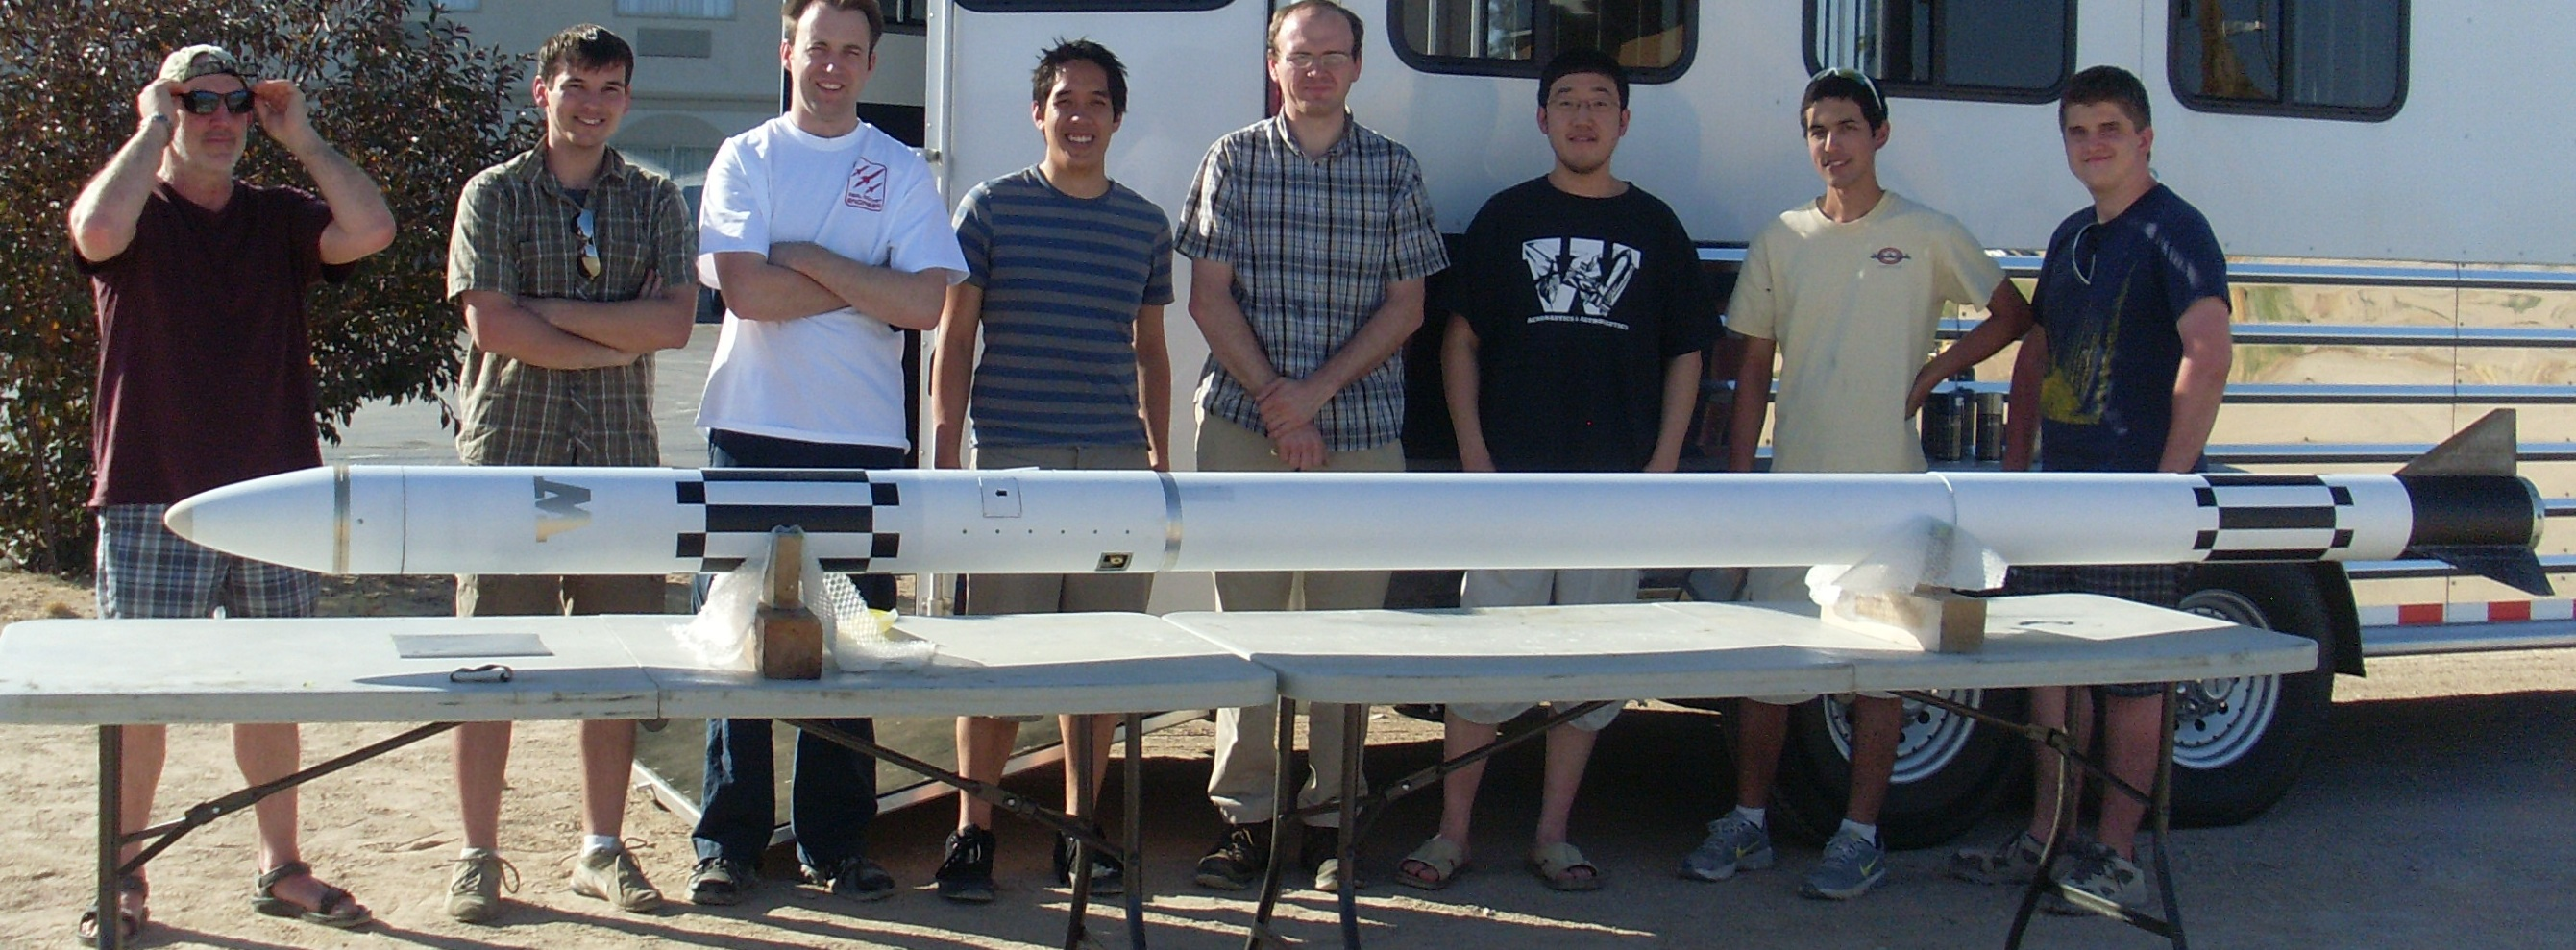 Sounding Rocket team